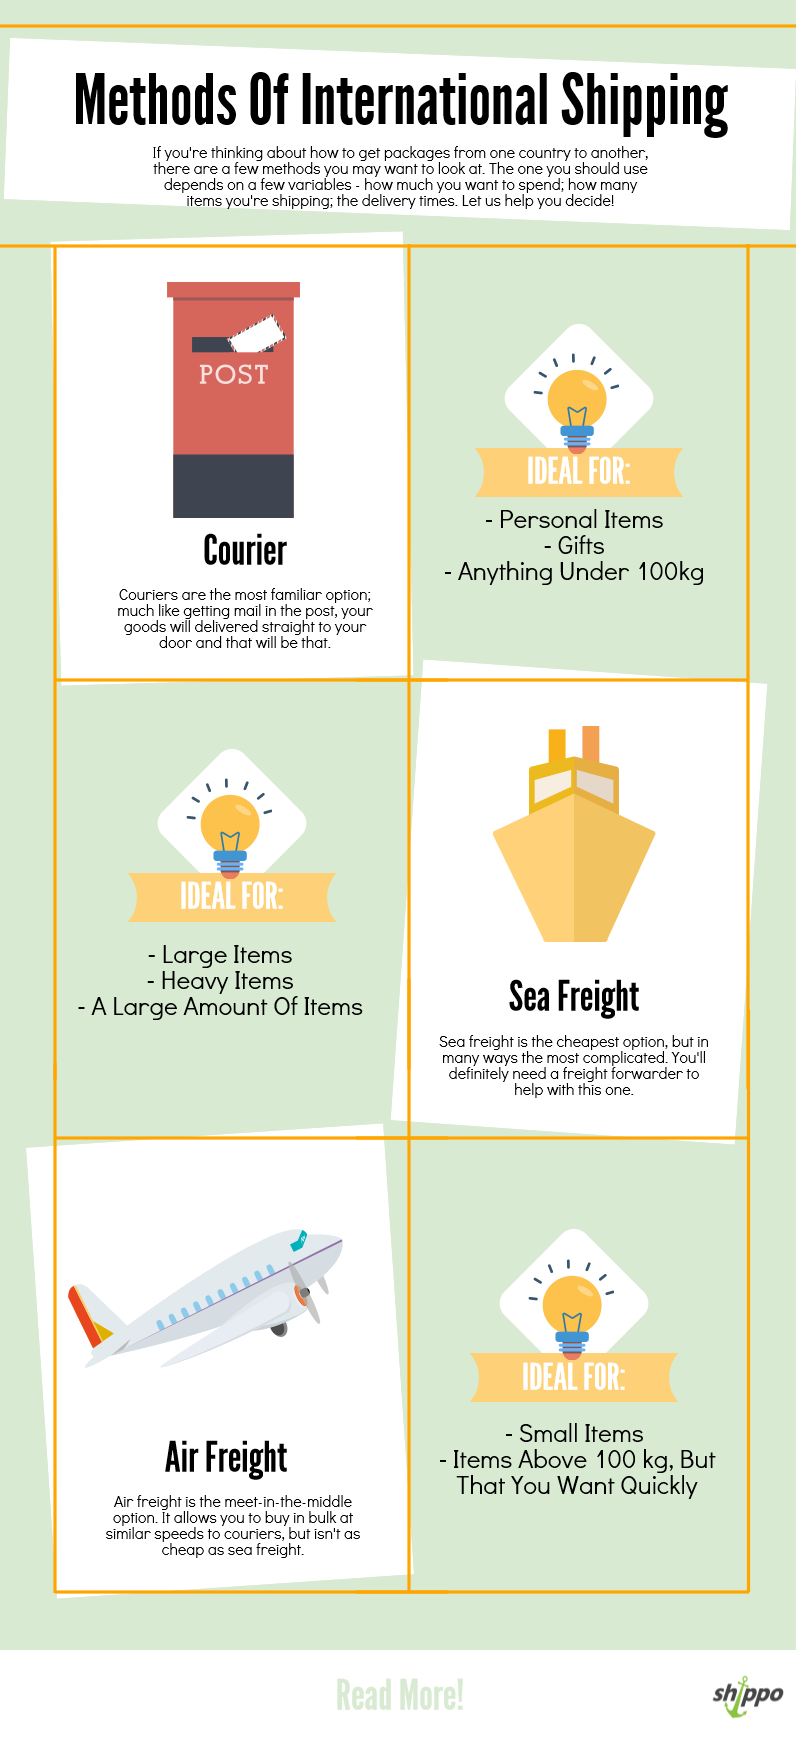 Courier Services compared to air freight and sea freight - cargo shipping explained